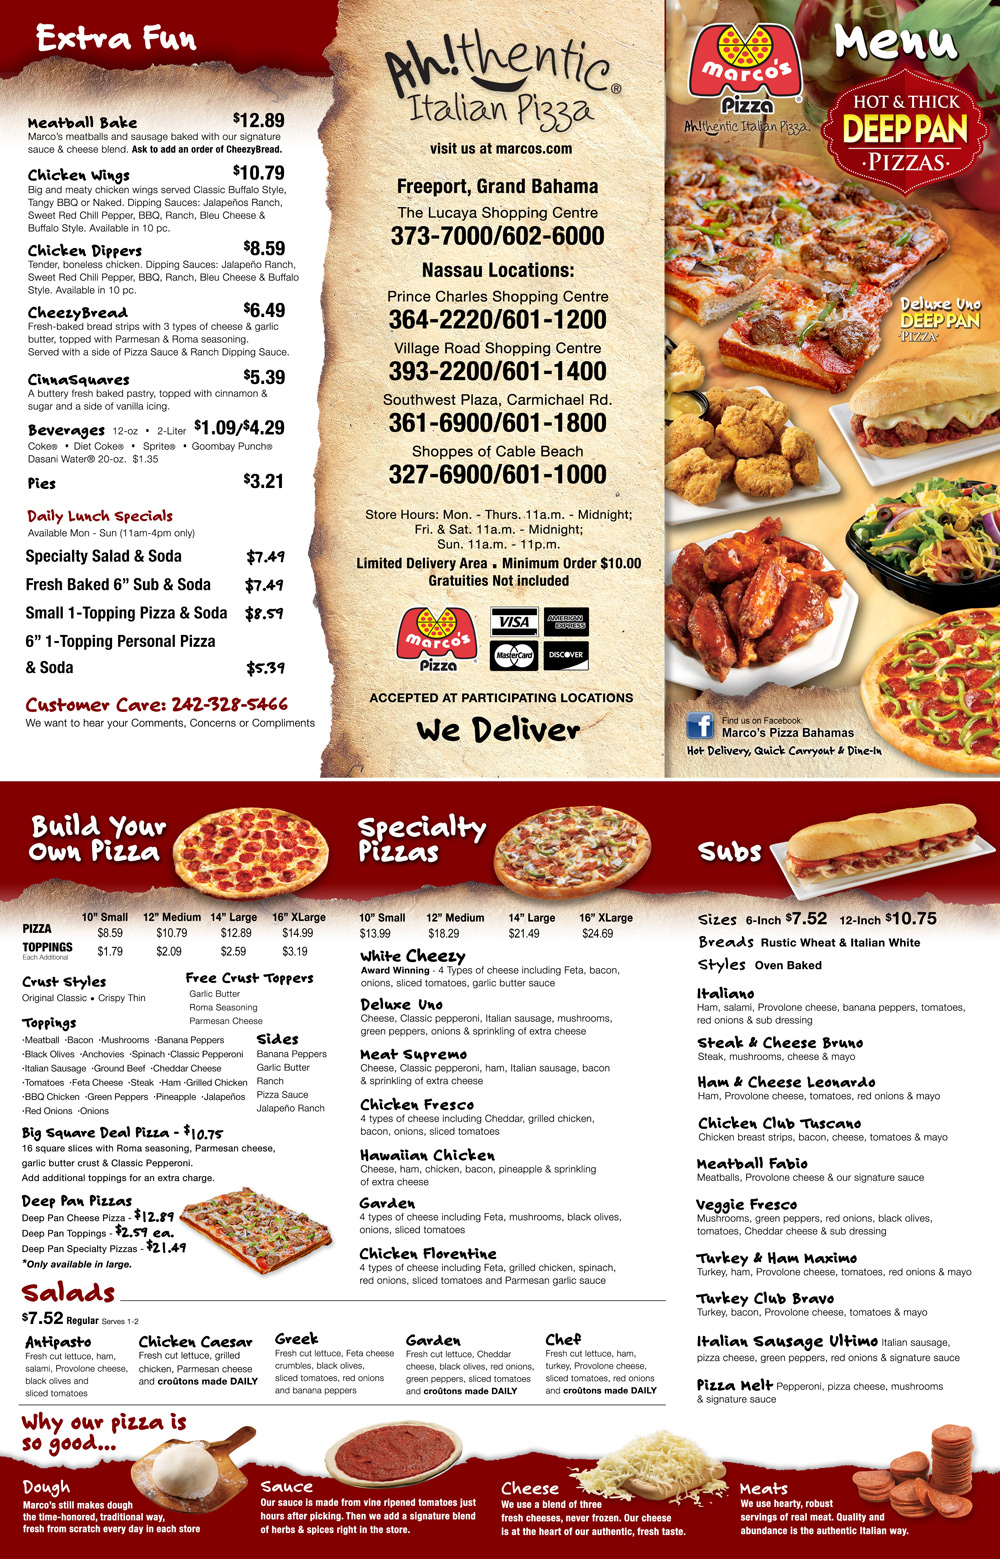 Marco's Pizza is a chain of restaurants offering freshly-made pizza pies, salads, sub sandwiches and more. Since online ordering is available at most locations, you can apply Marco's Pizza promo codes listed on this page for discounts on your meal, including .